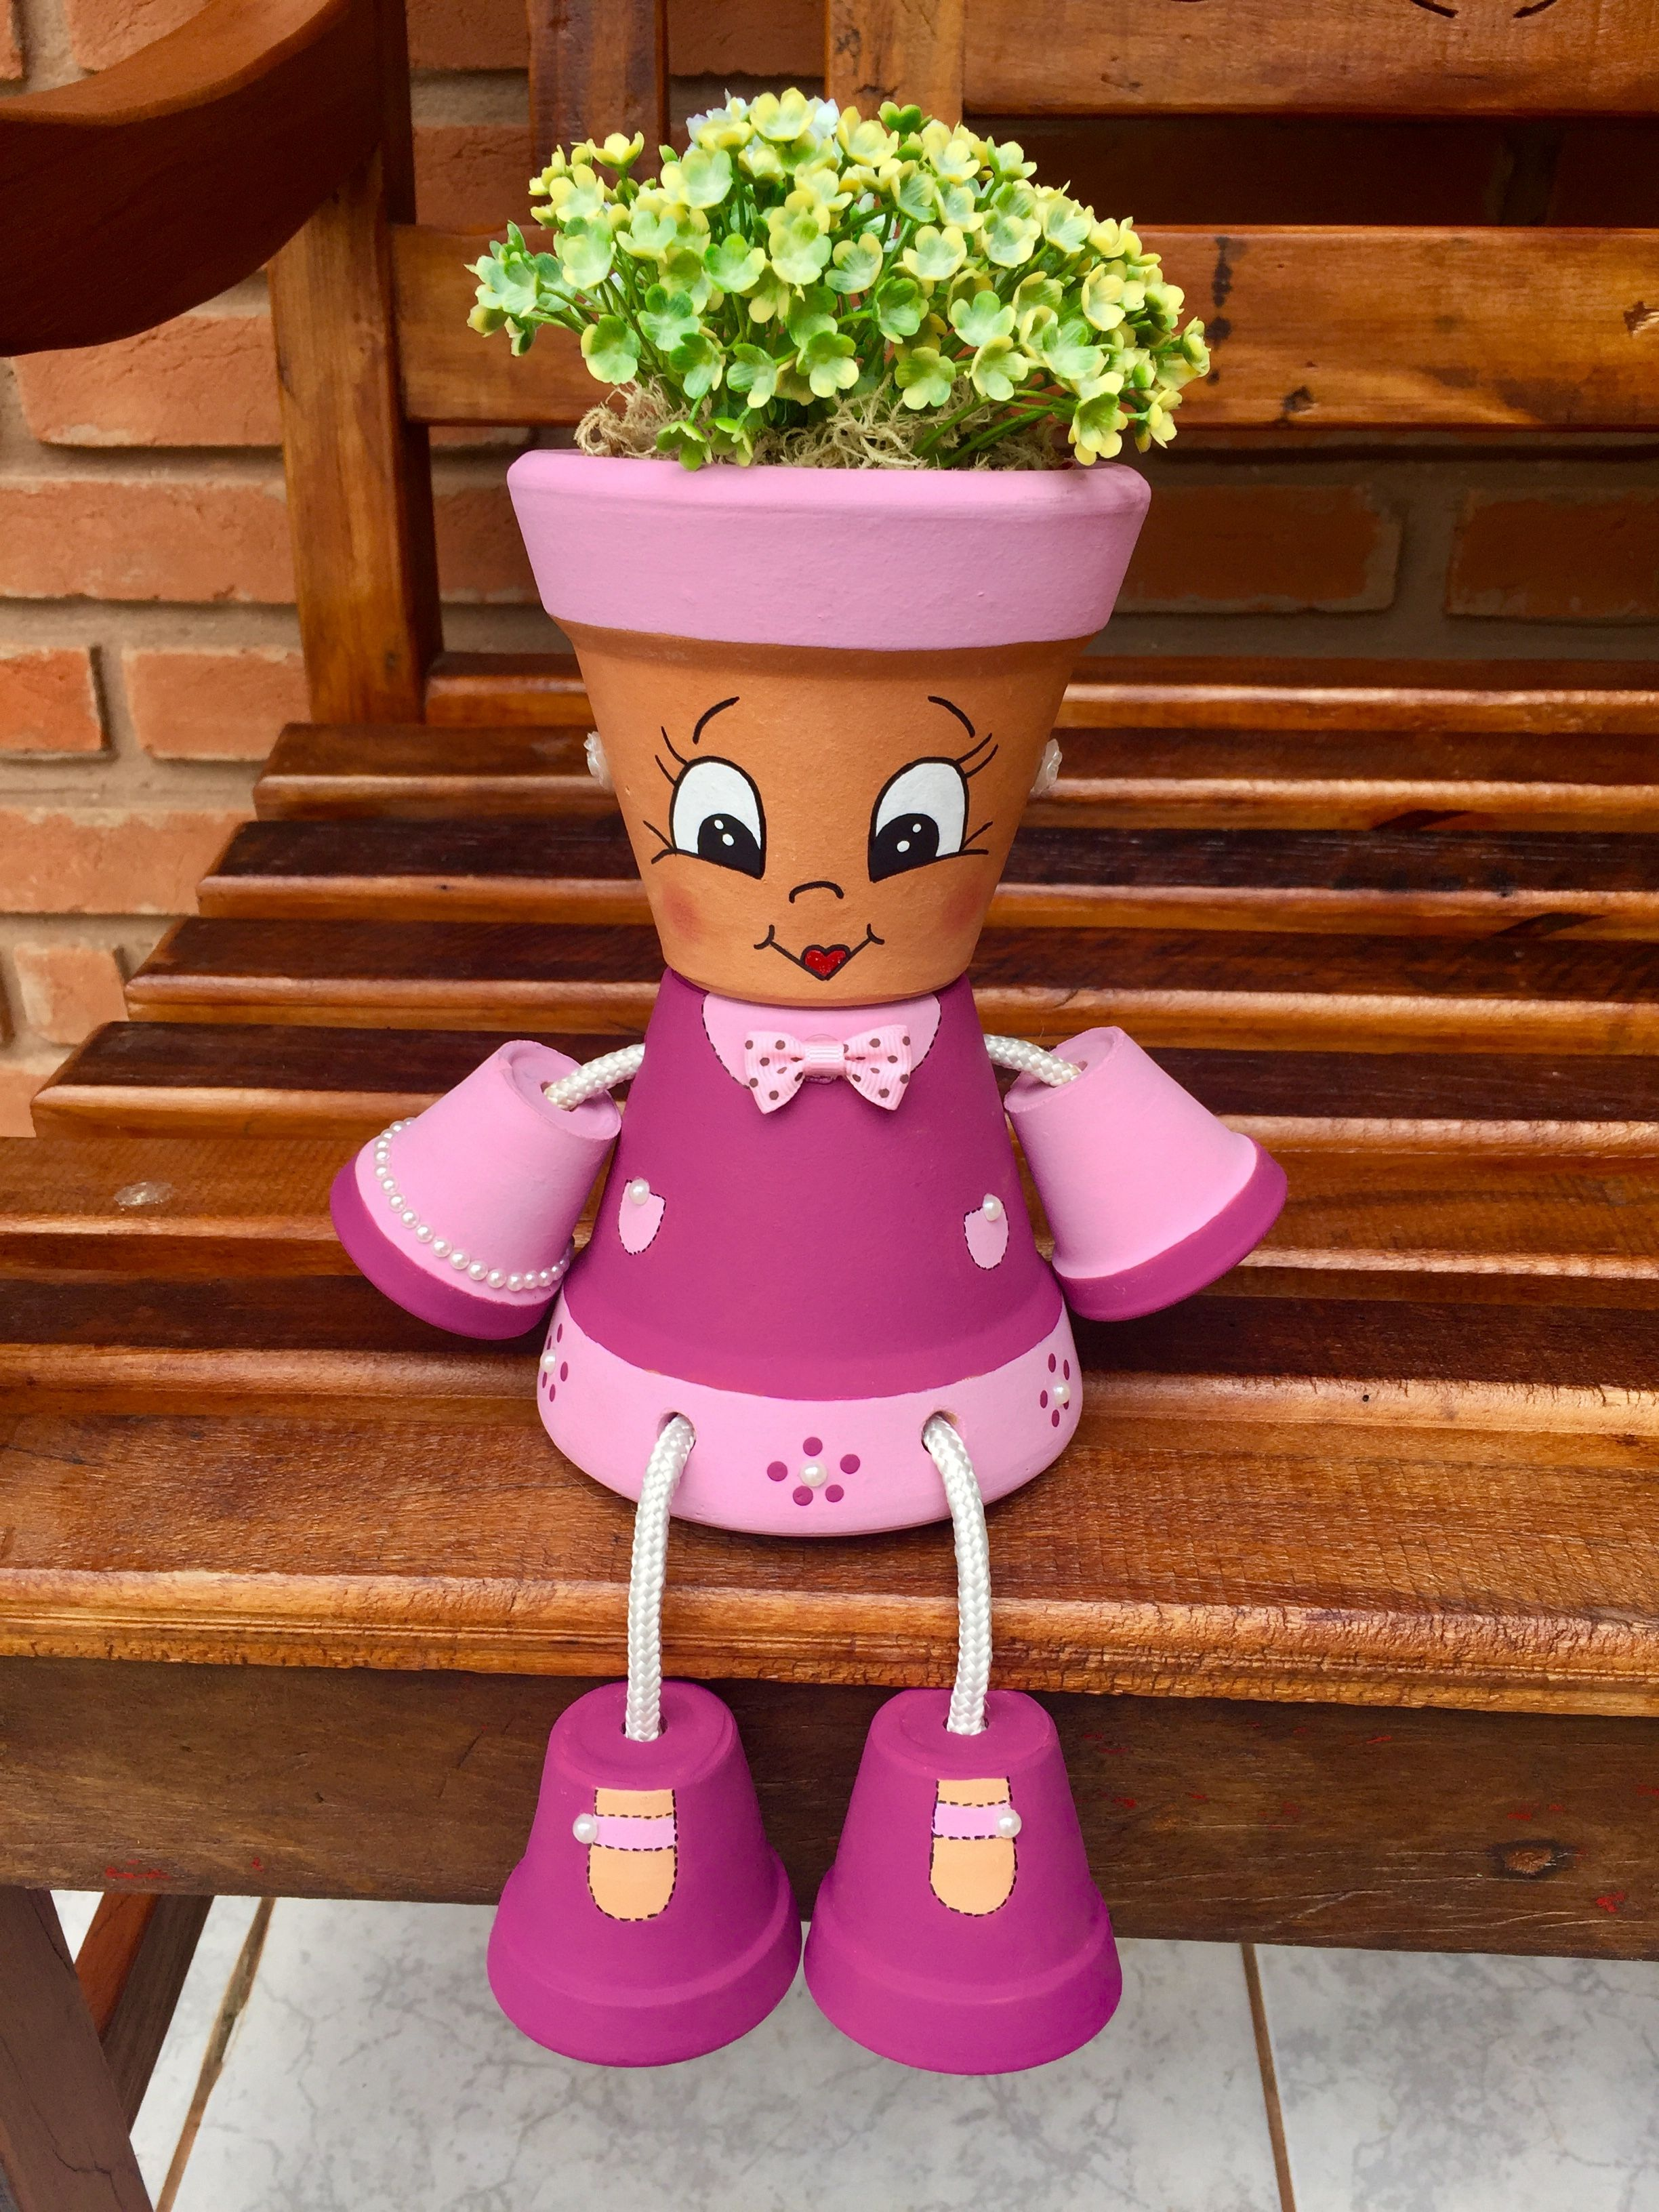 pin by lita brown on pot people pinterest clay clay pot people and flower pot people. Black Bedroom Furniture Sets. Home Design Ideas